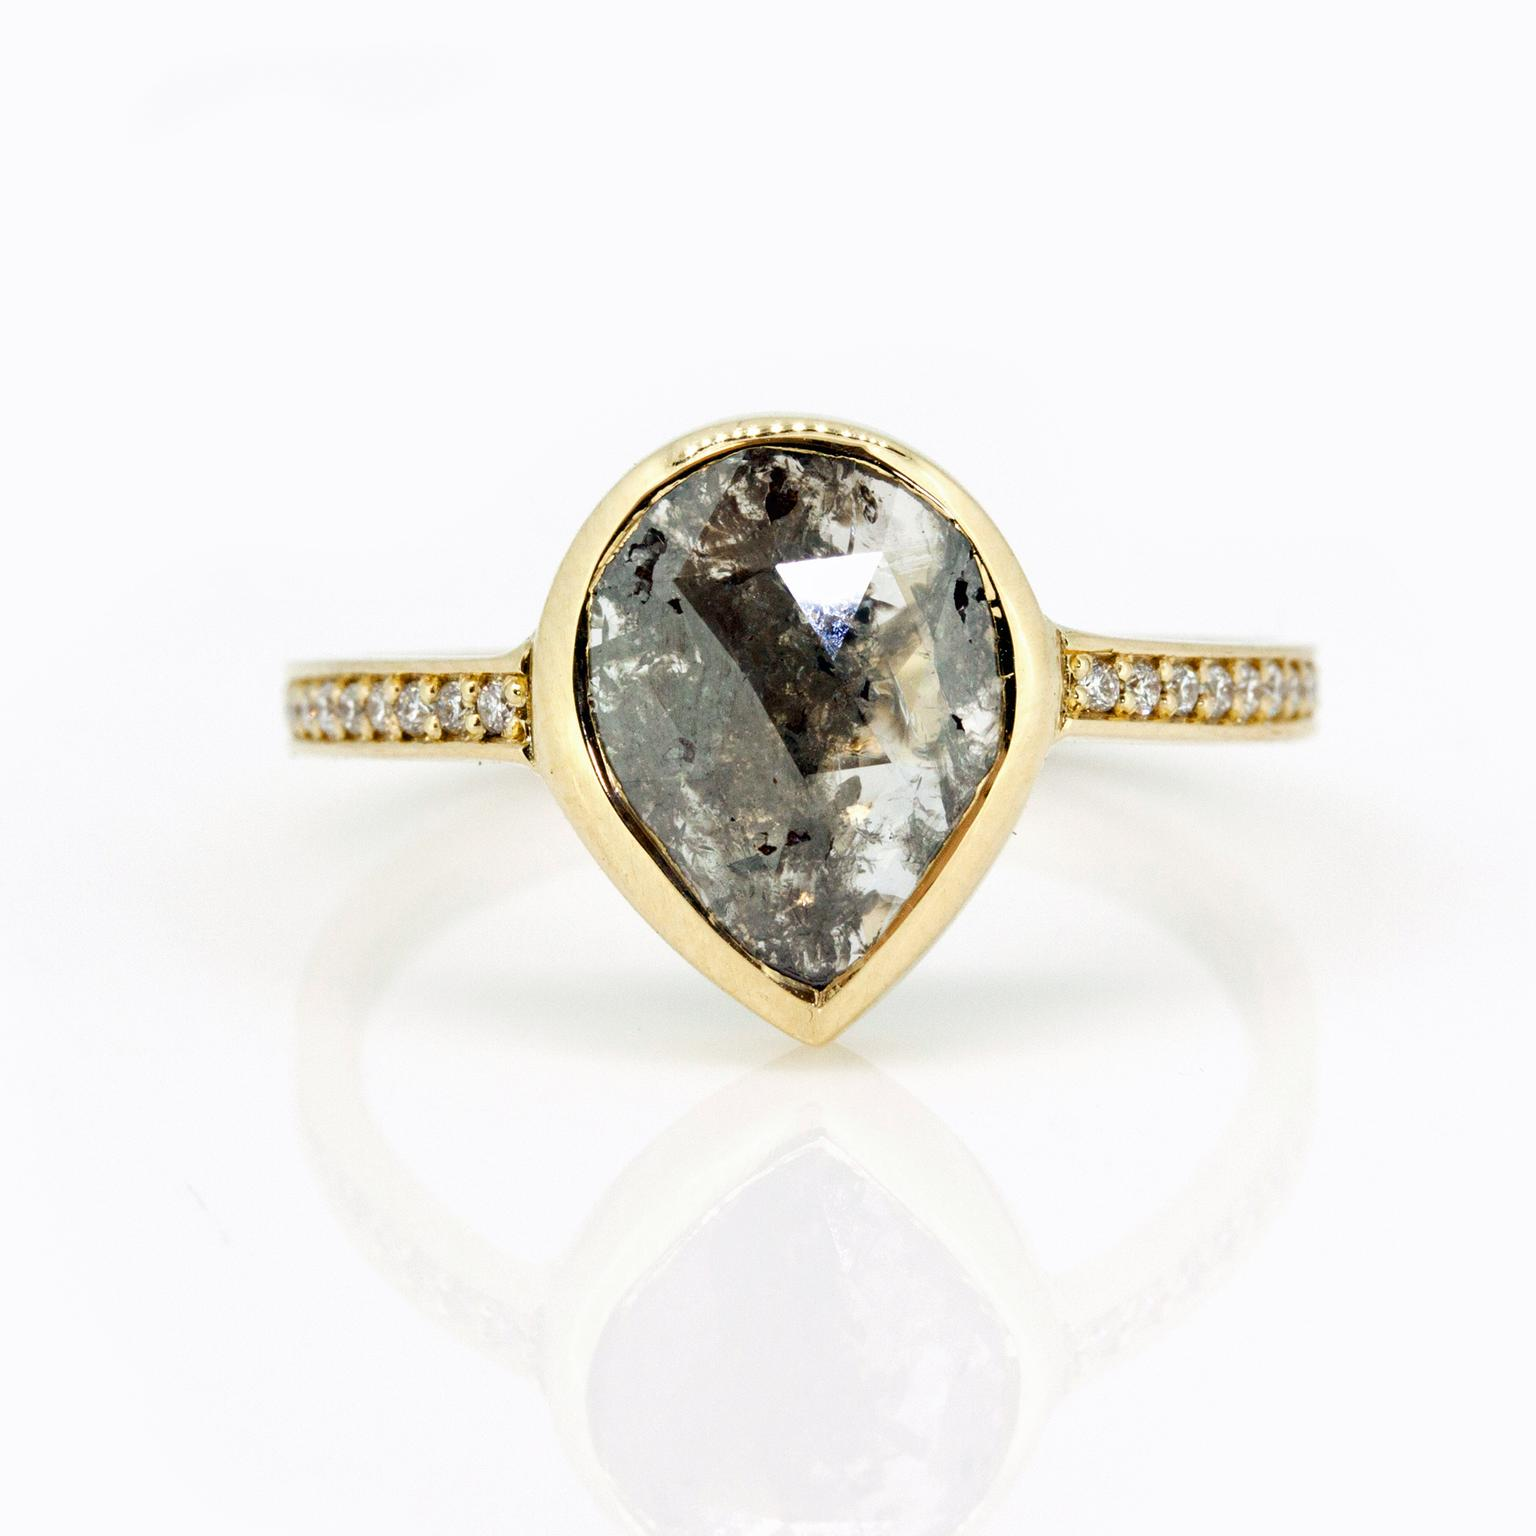 Sorrel Bay engagement ring in Fairtrade gold